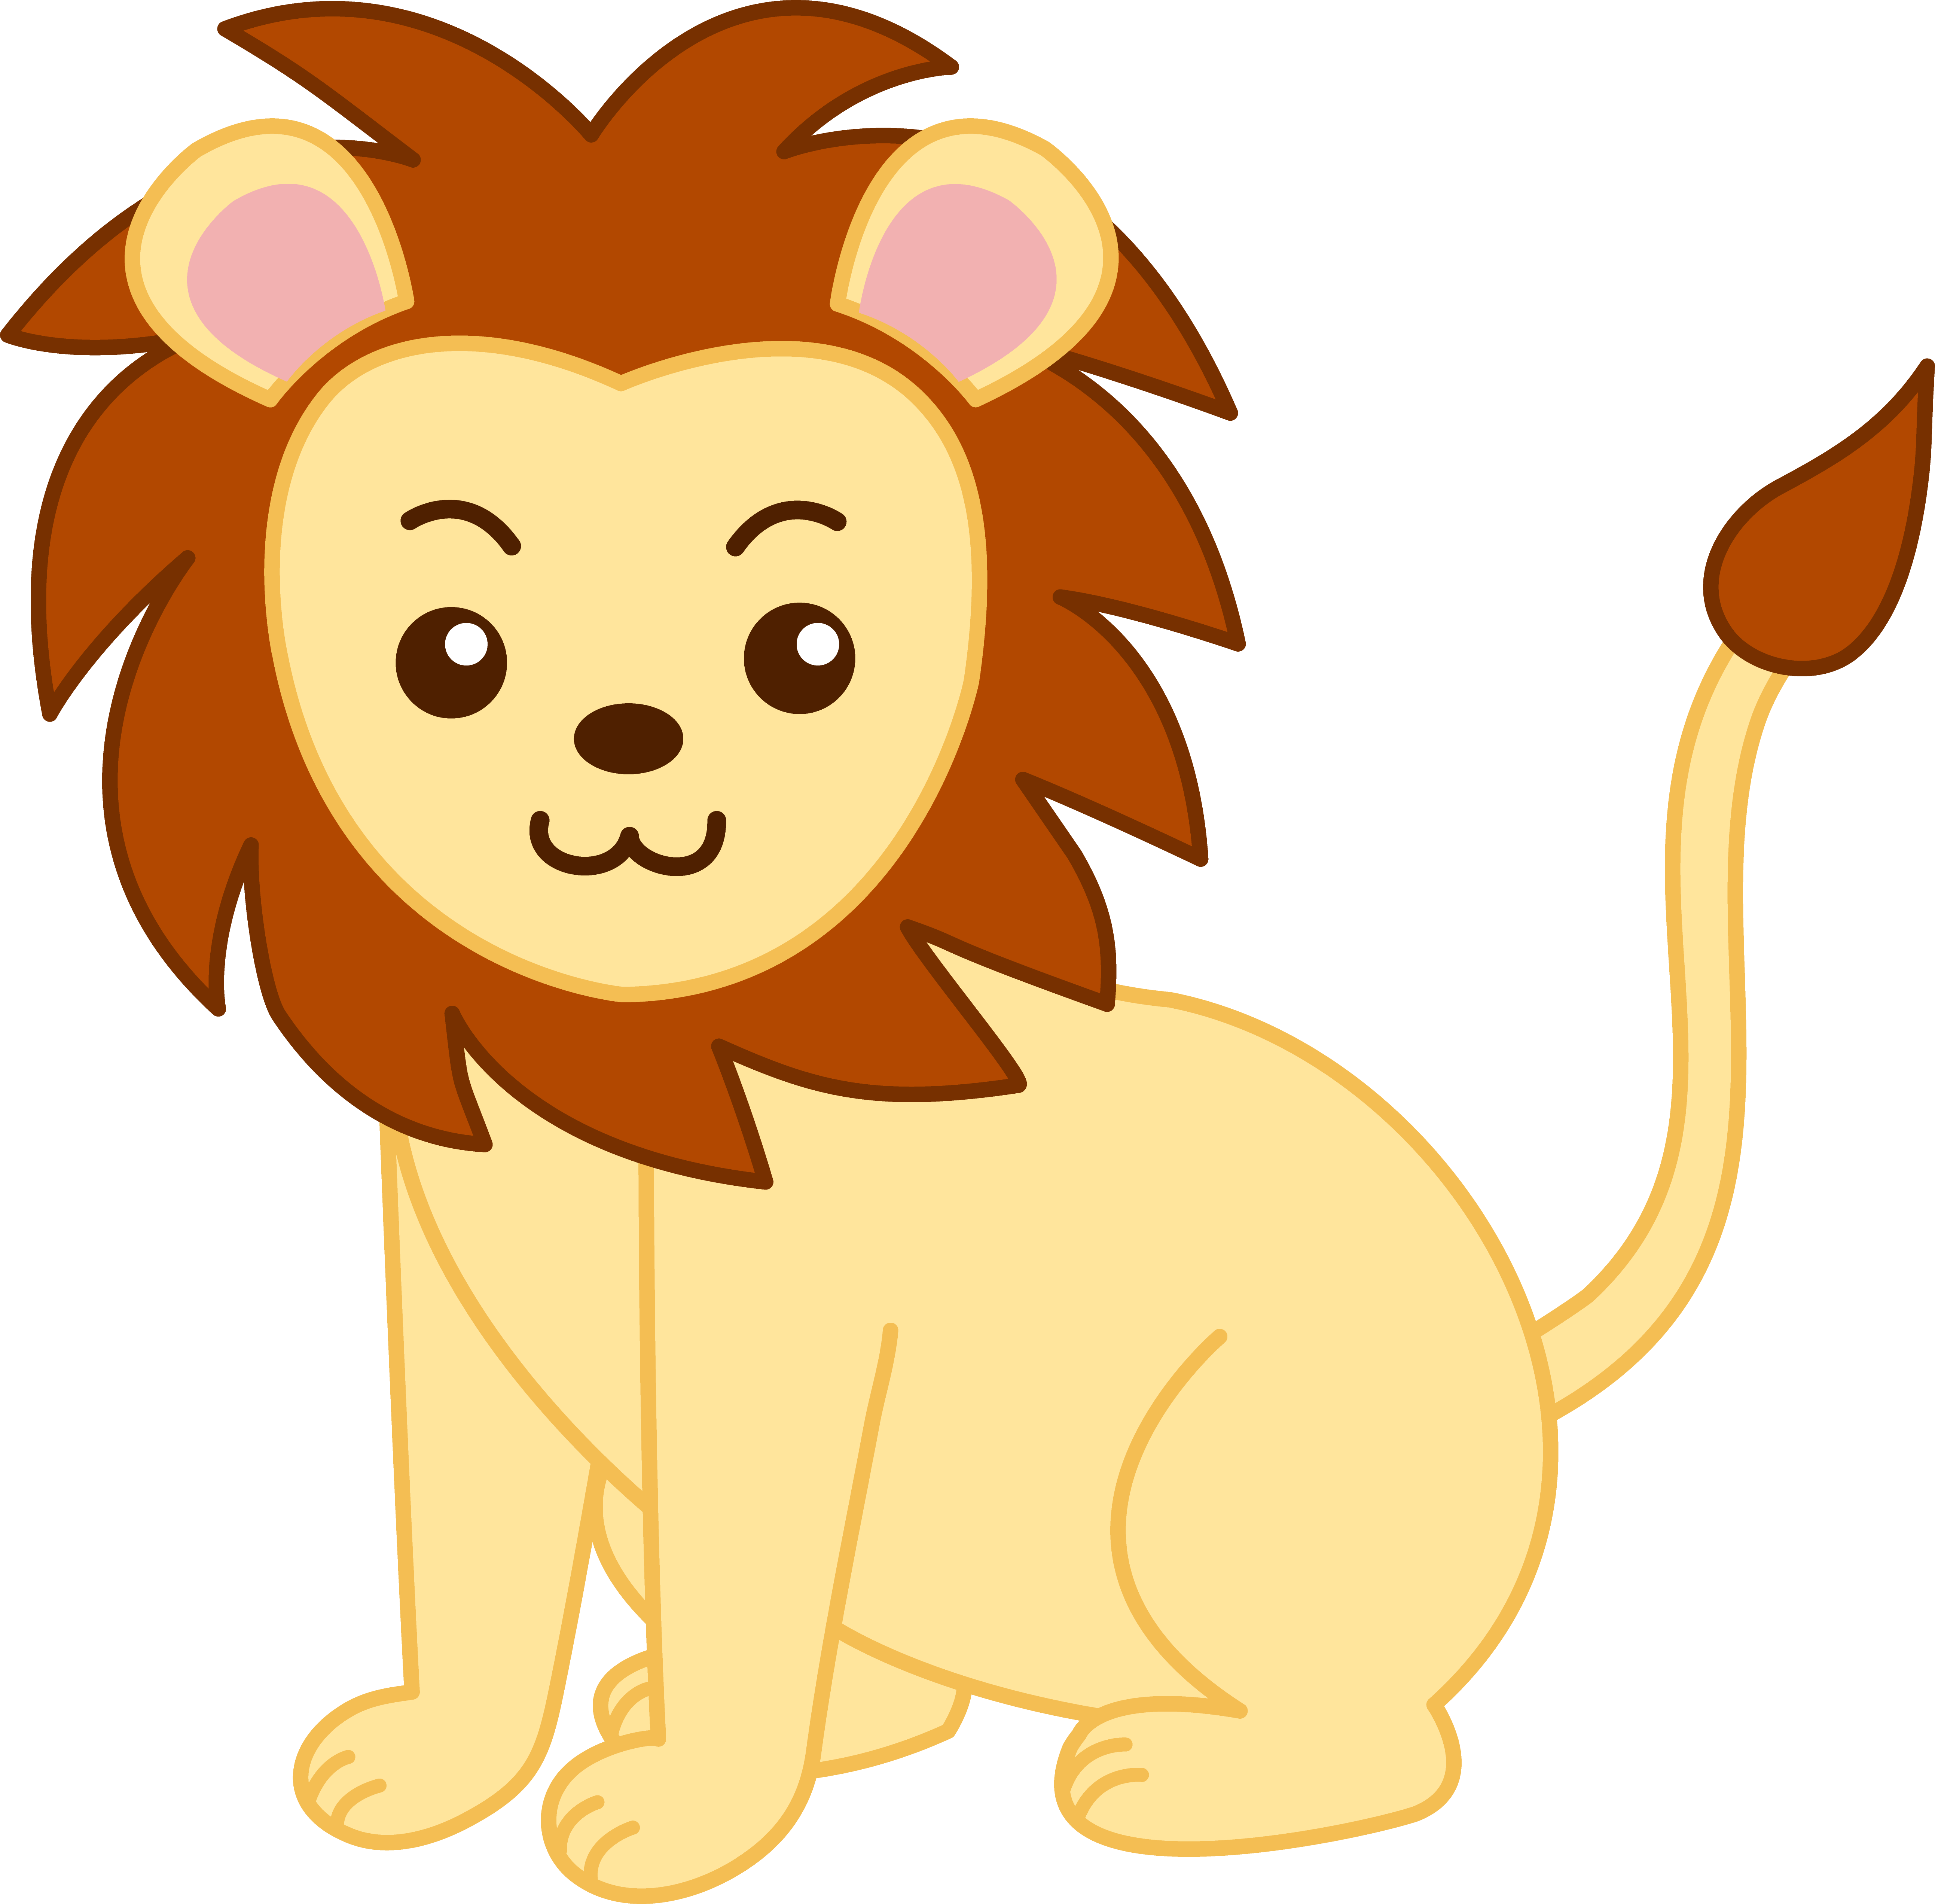 Boy sitting criss cross clipart svg transparent Baby Lion Clipart | Clipart Panda - Free Clipart Images svg transparent